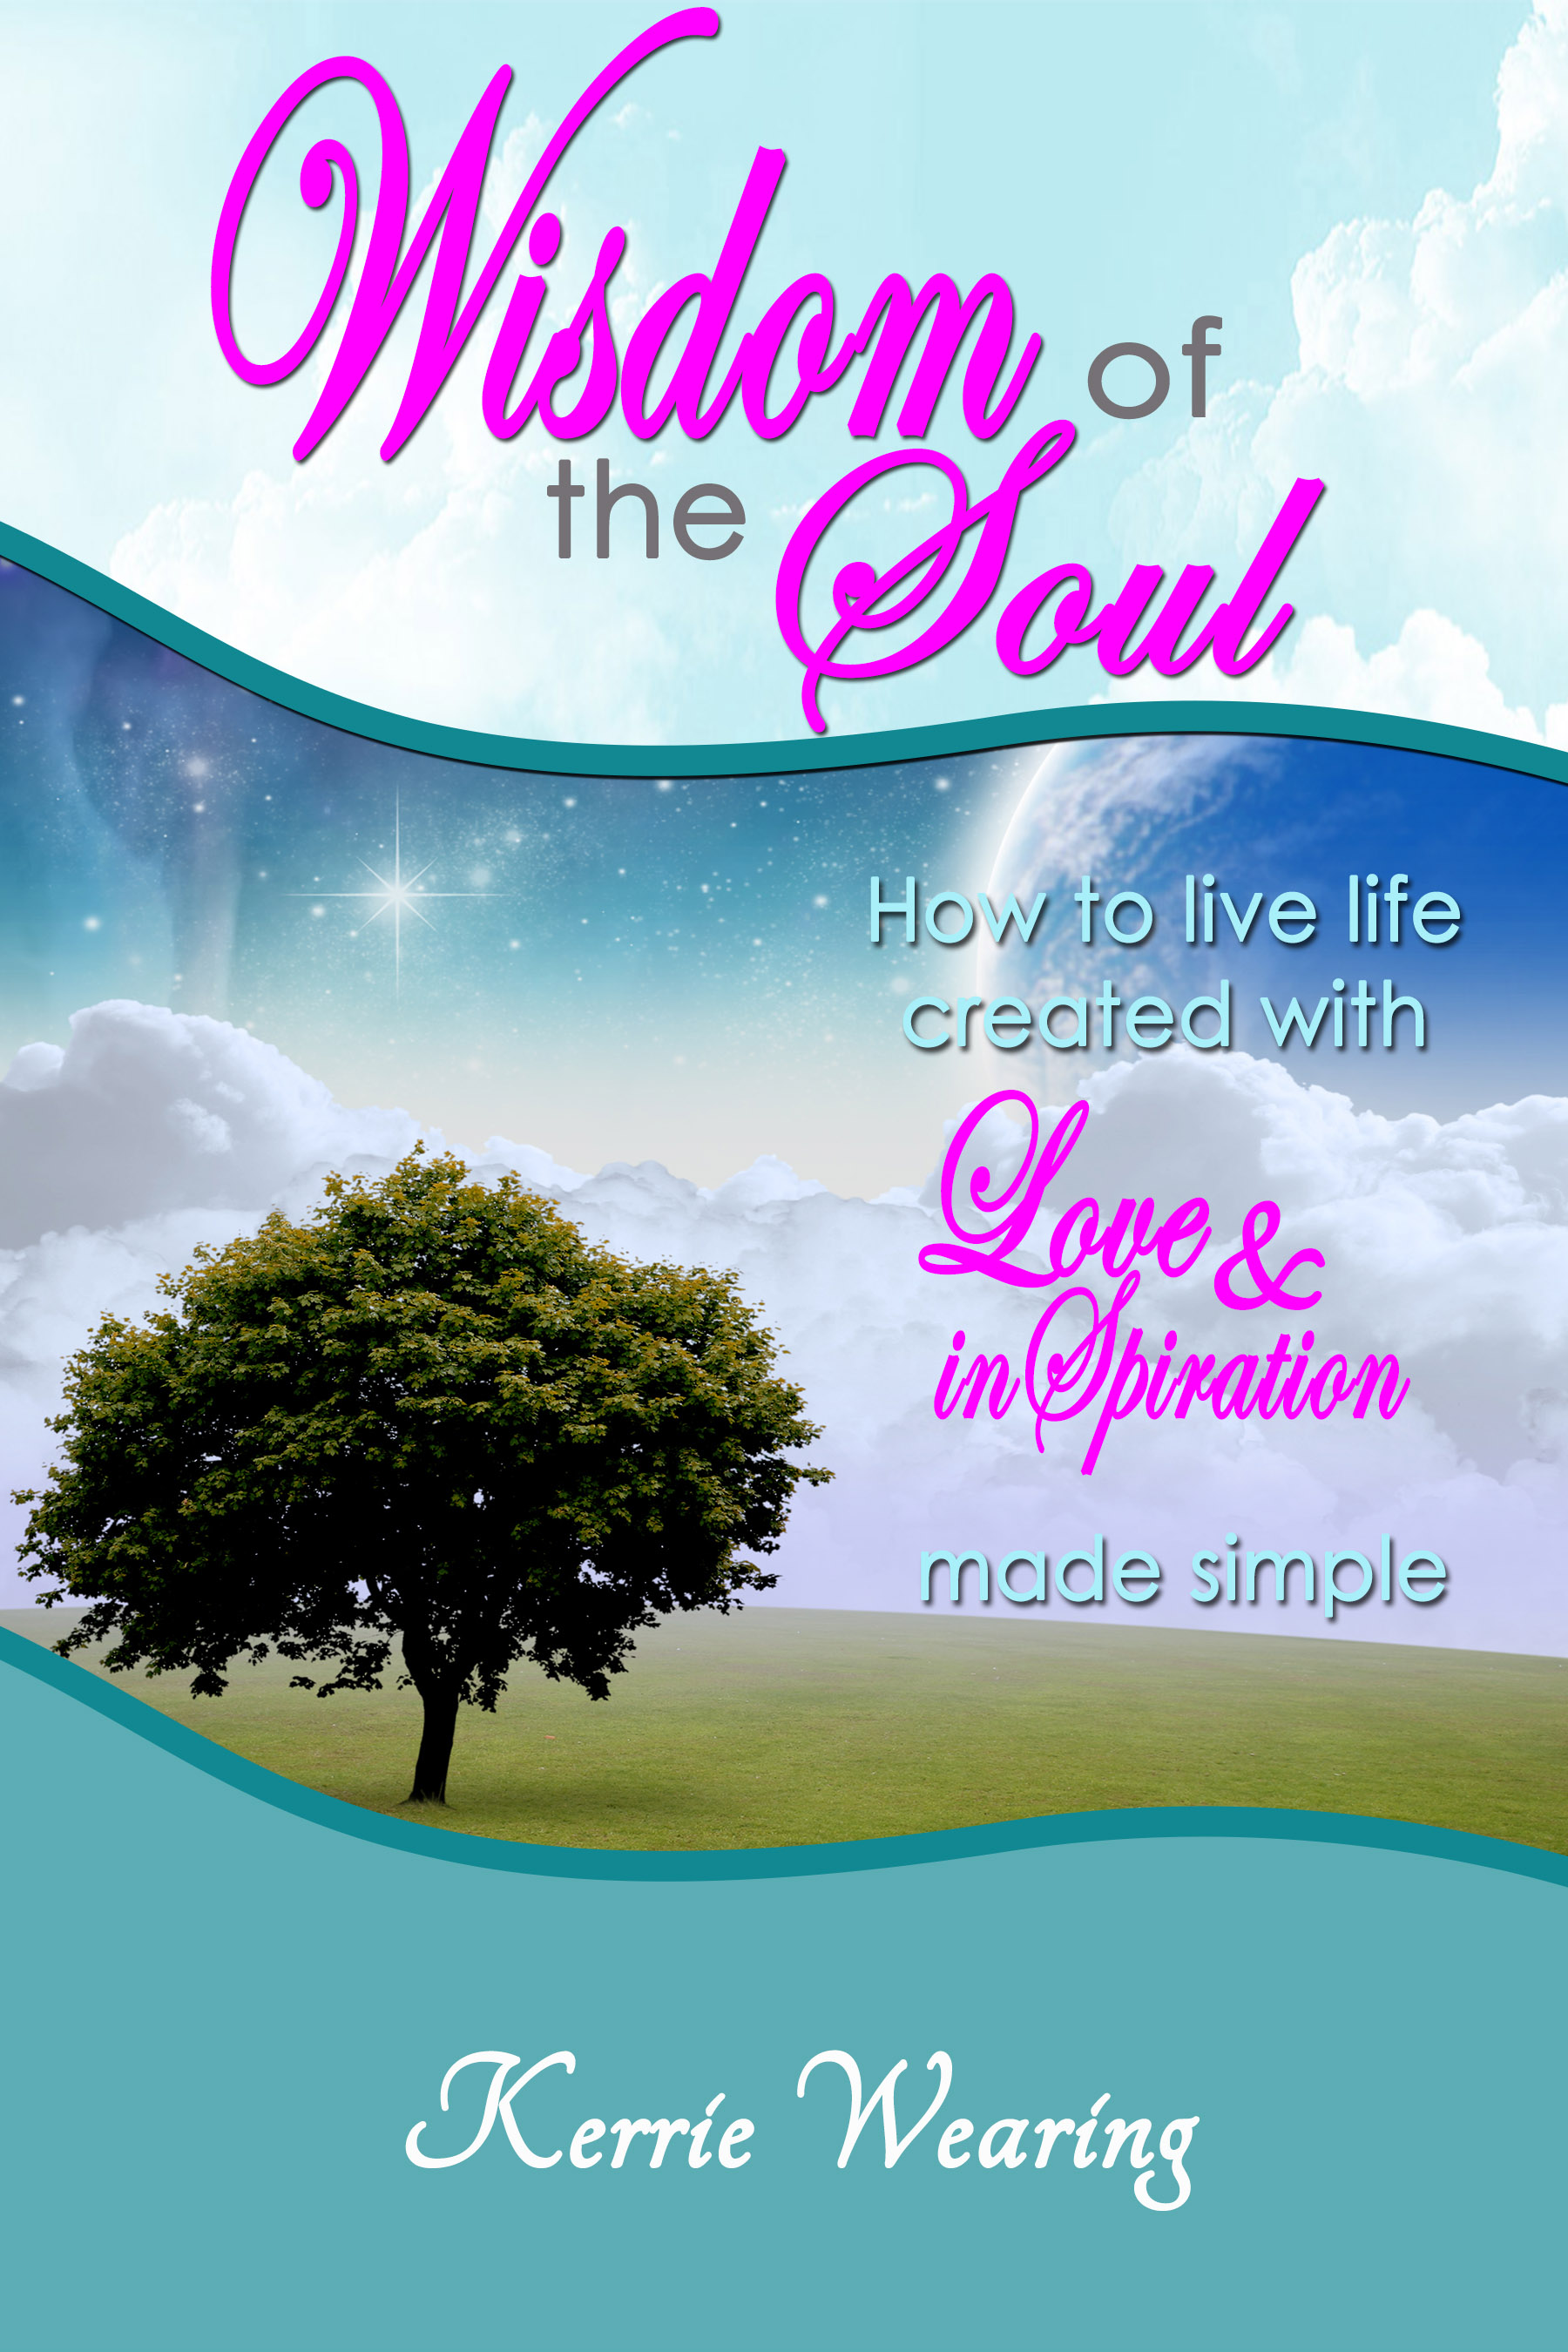 WOOHOO! Wisdom of the Soul is now available for pre-orders